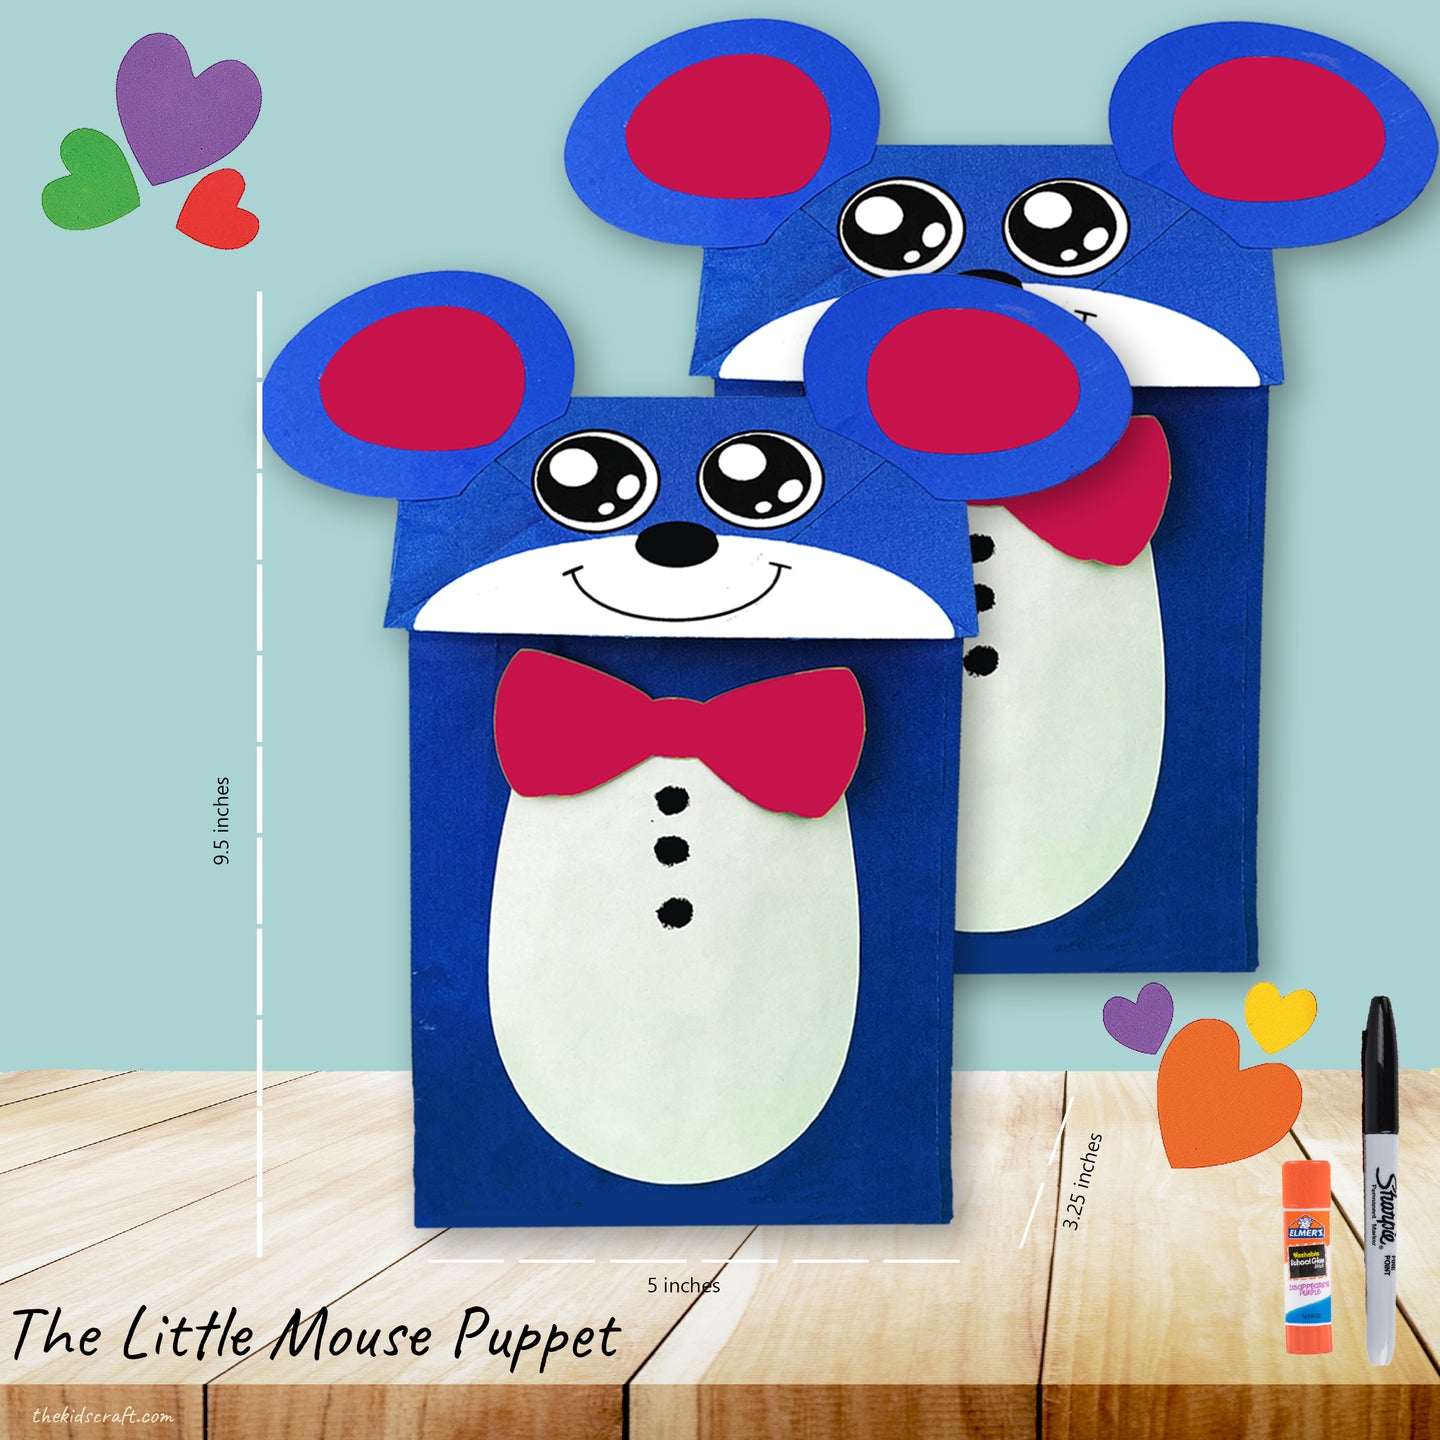 The Little Mouse Puppet (Bundled for 2)